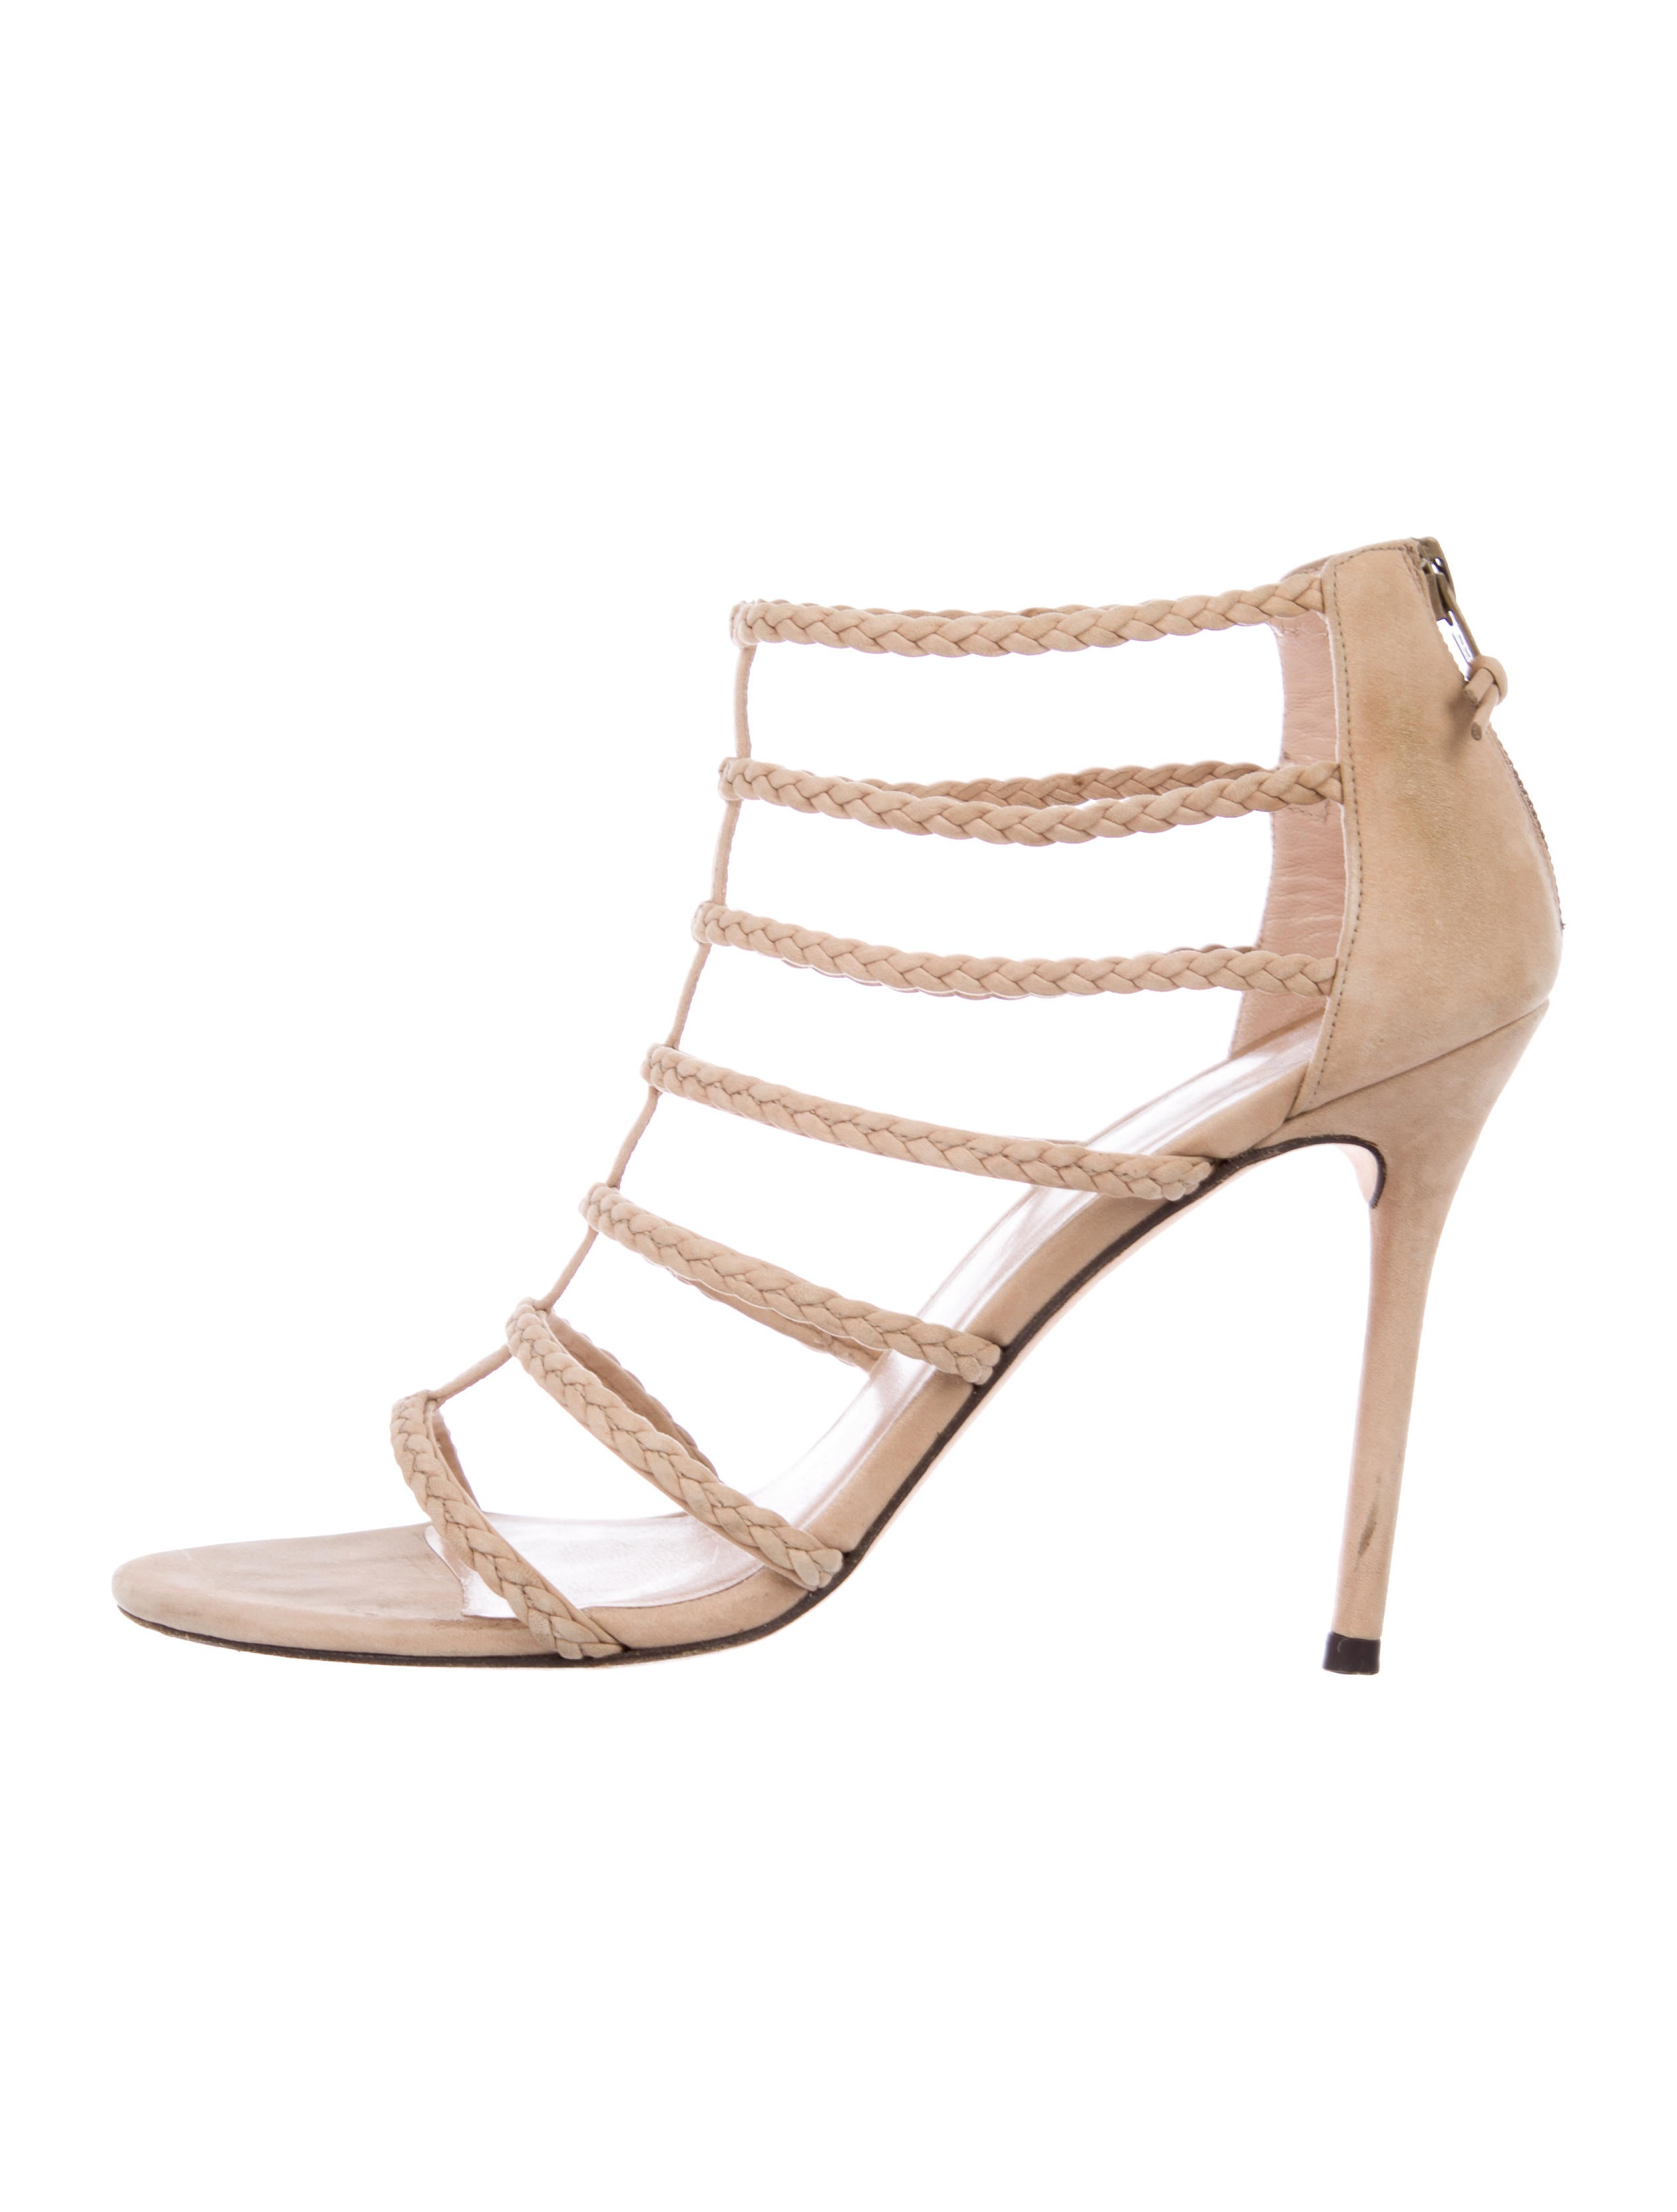 clearance shop Stuart Weitzman Truelove Cage Sandals cheap sale shop for discount websites fast delivery buy cheap visit new S2YCA7w23H